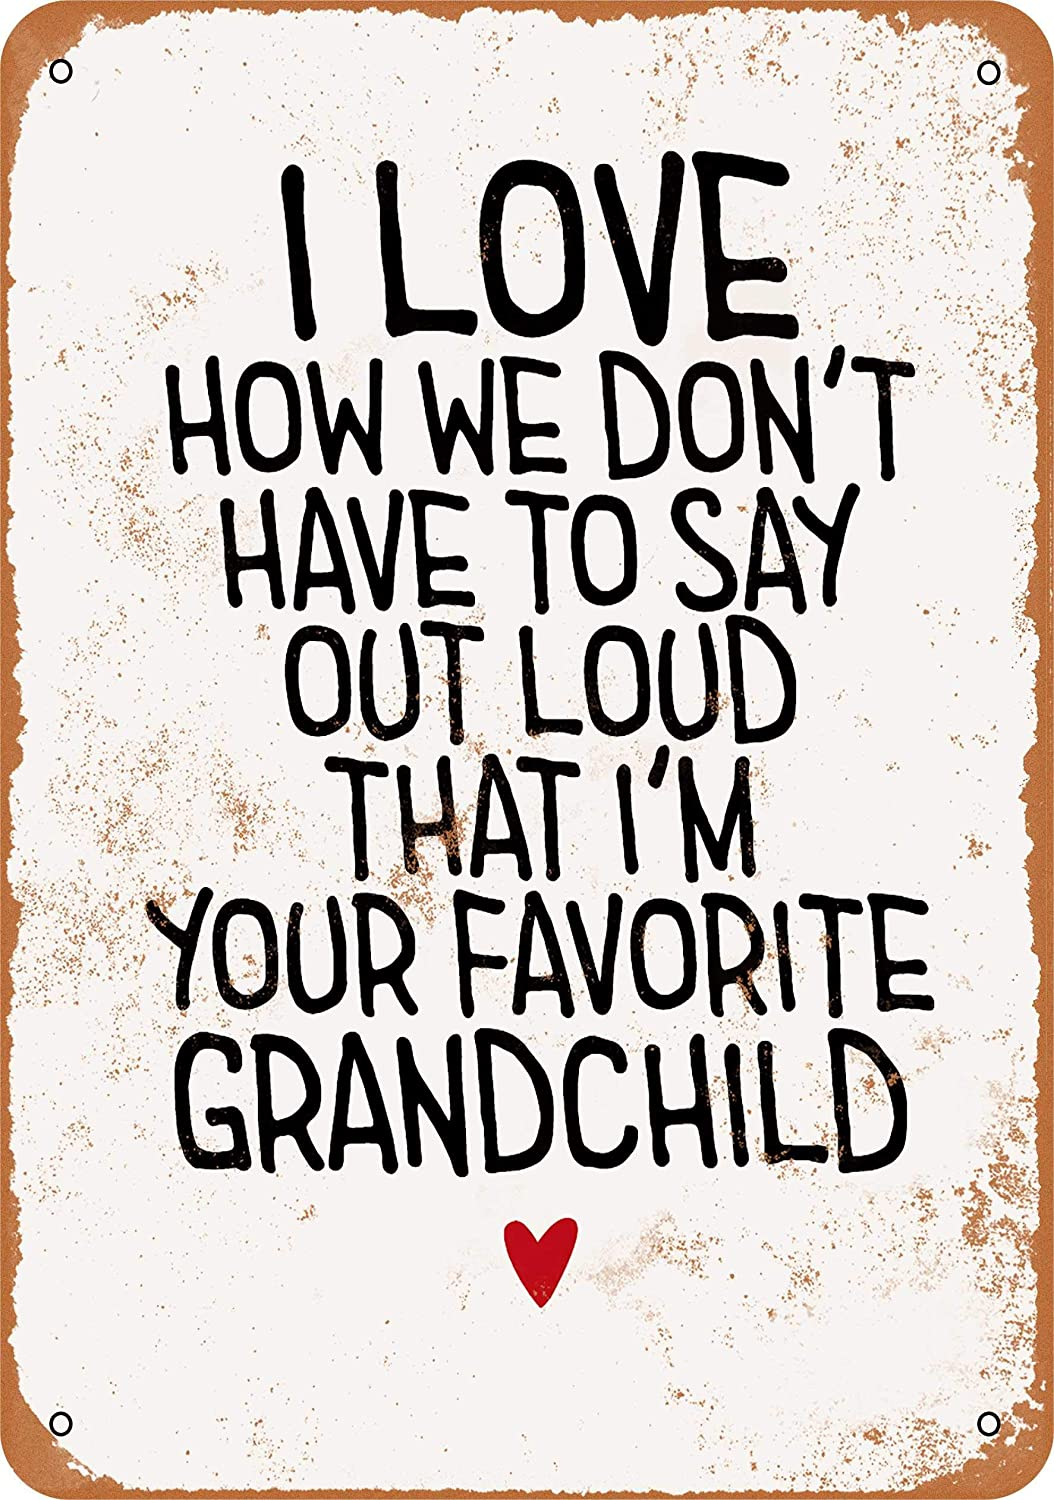 Wall-Color 10 x 14 Metal Sign - I'm Your Favorite Grandchild - Vintage Look